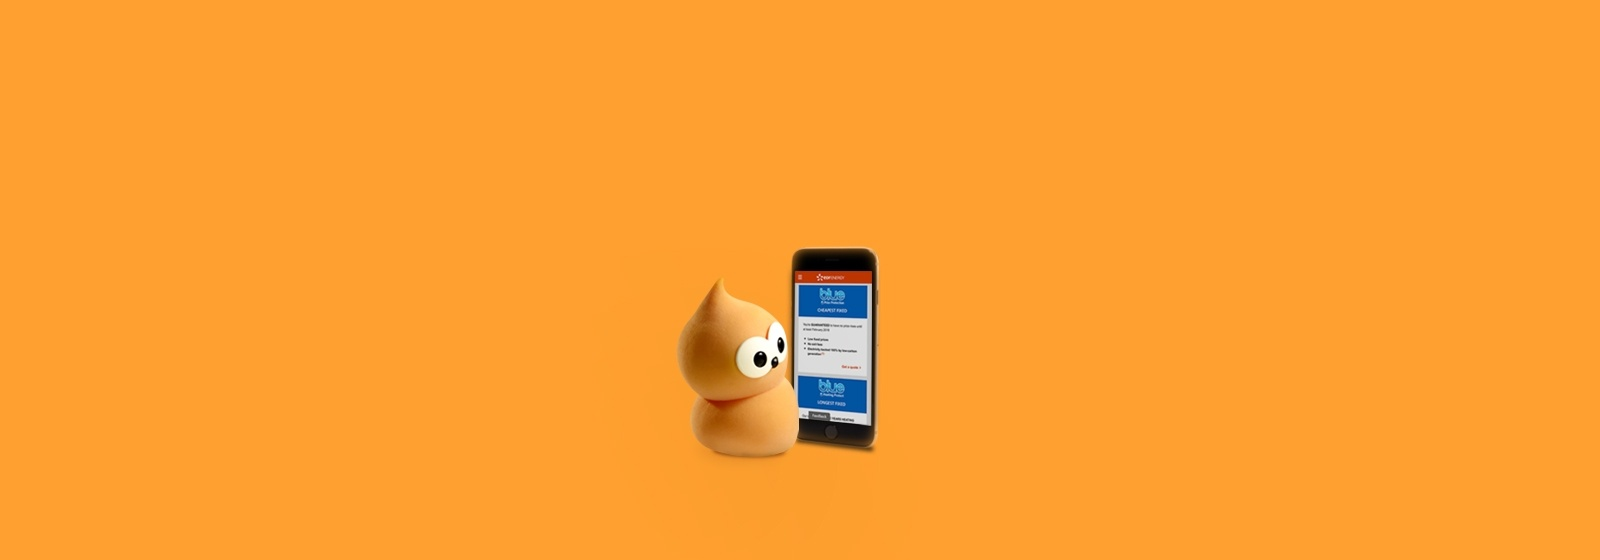 Zingy next to phone